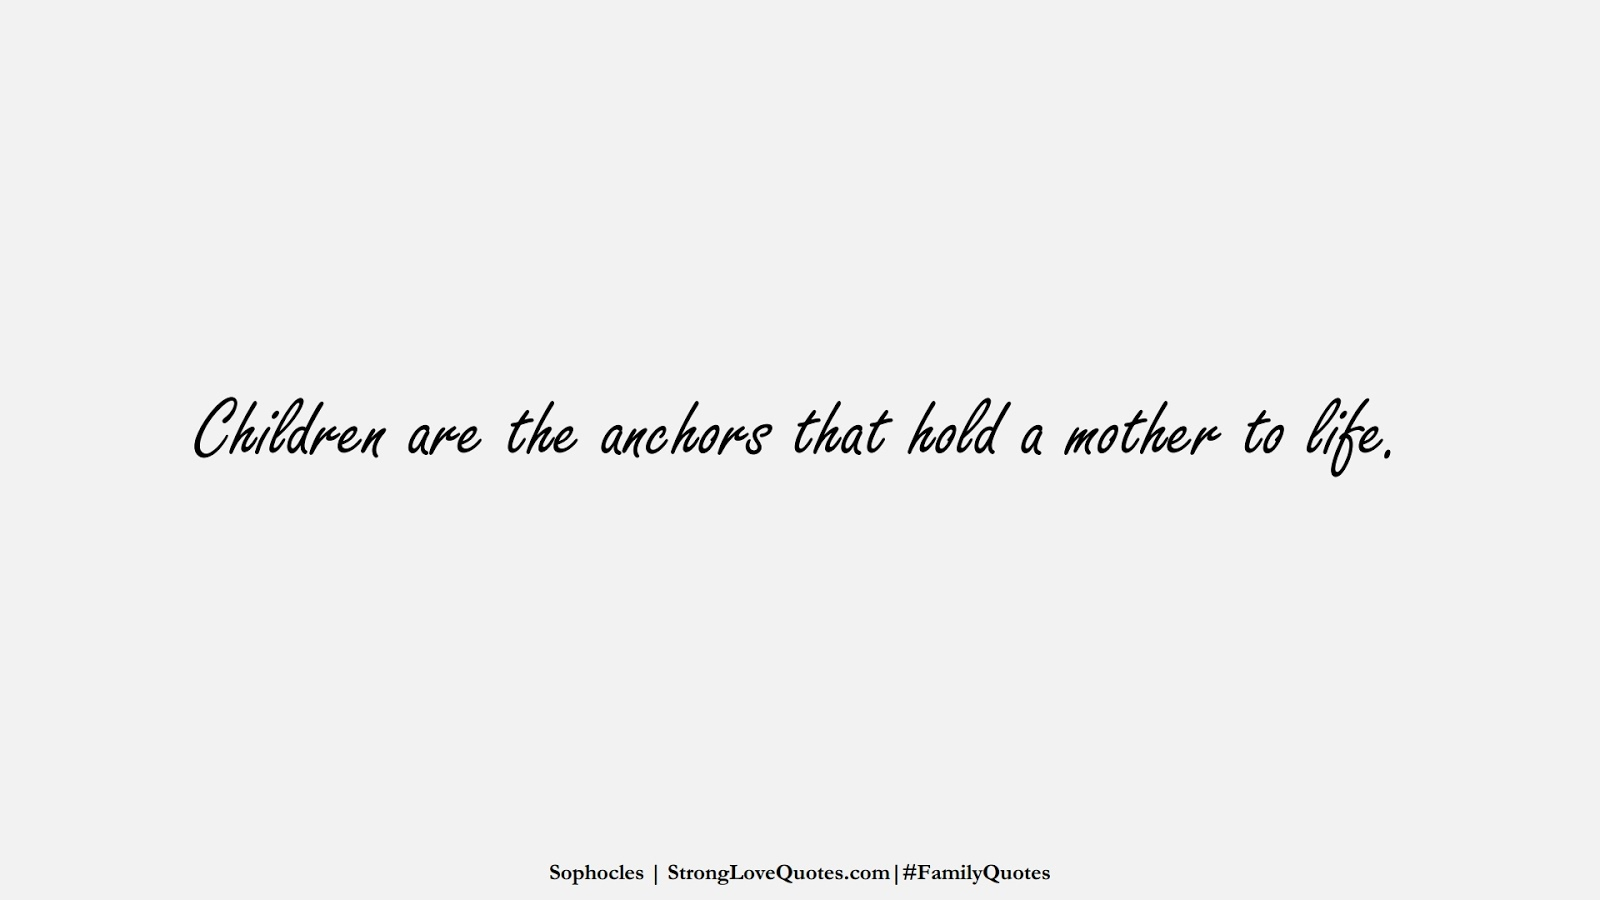 Children are the anchors that hold a mother to life. (Sophocles);  #FamilyQuotes